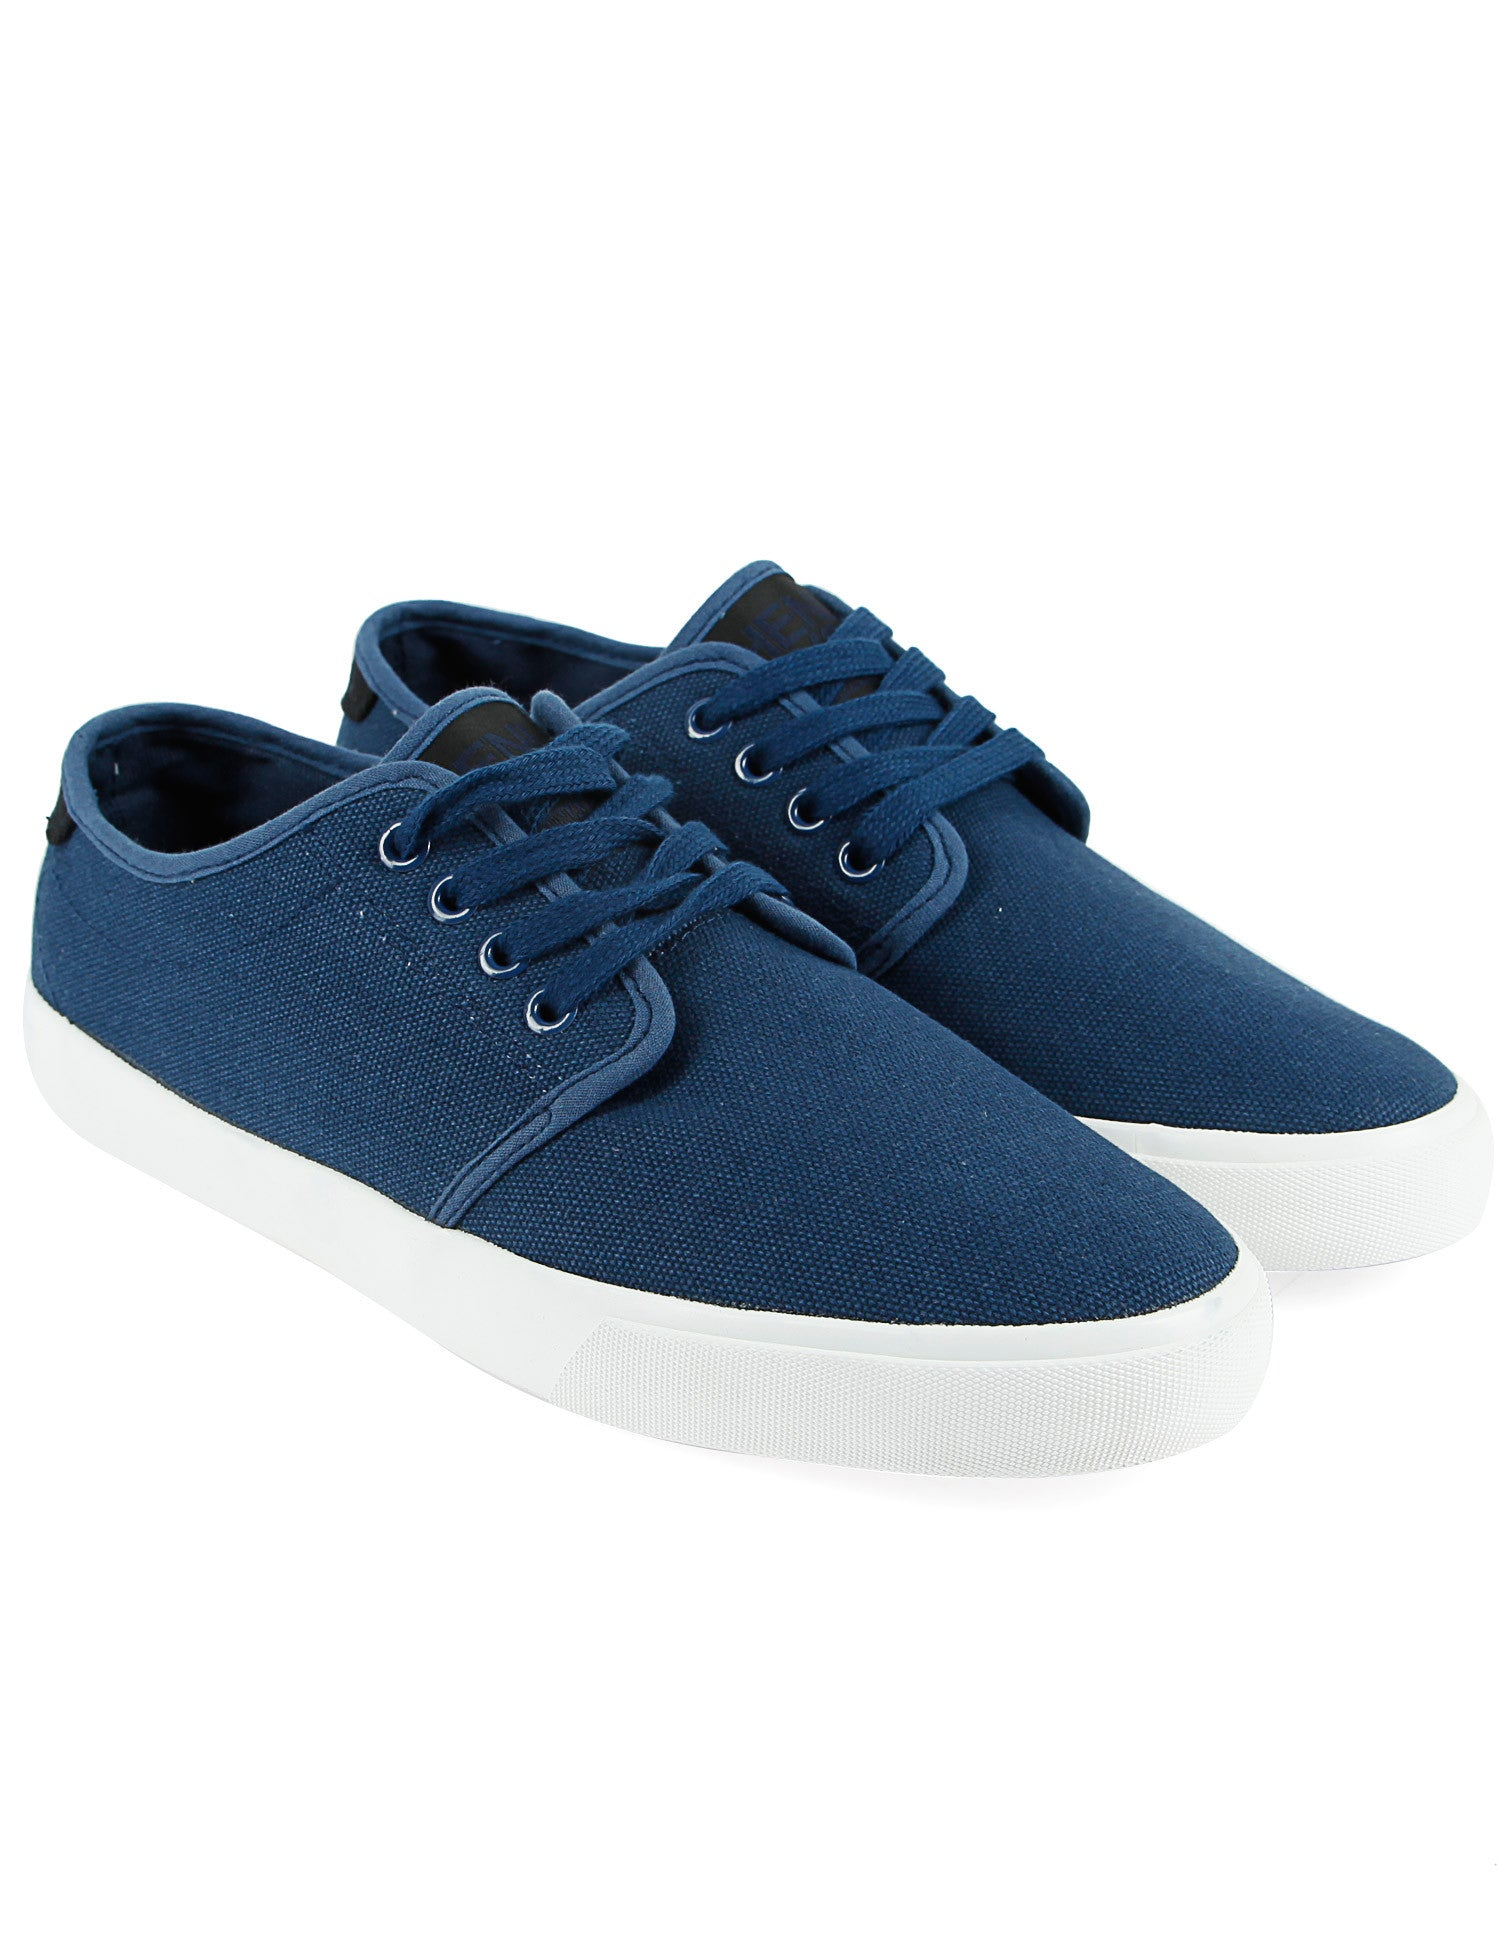 Henleys Addison Shoes HFW00019 Navy